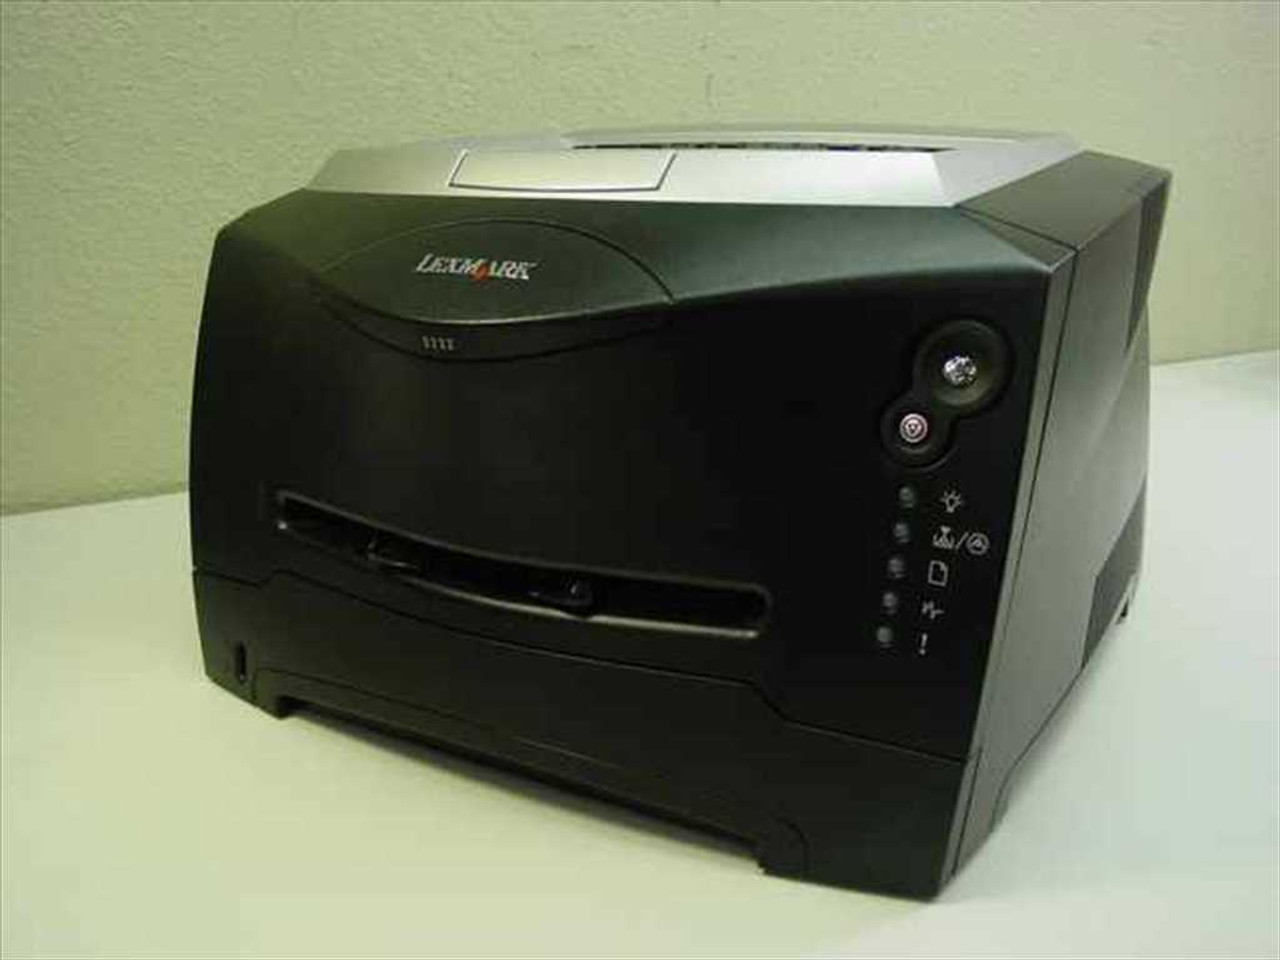 LEXMARK E232 LASER JET WINDOWS 7 DRIVER